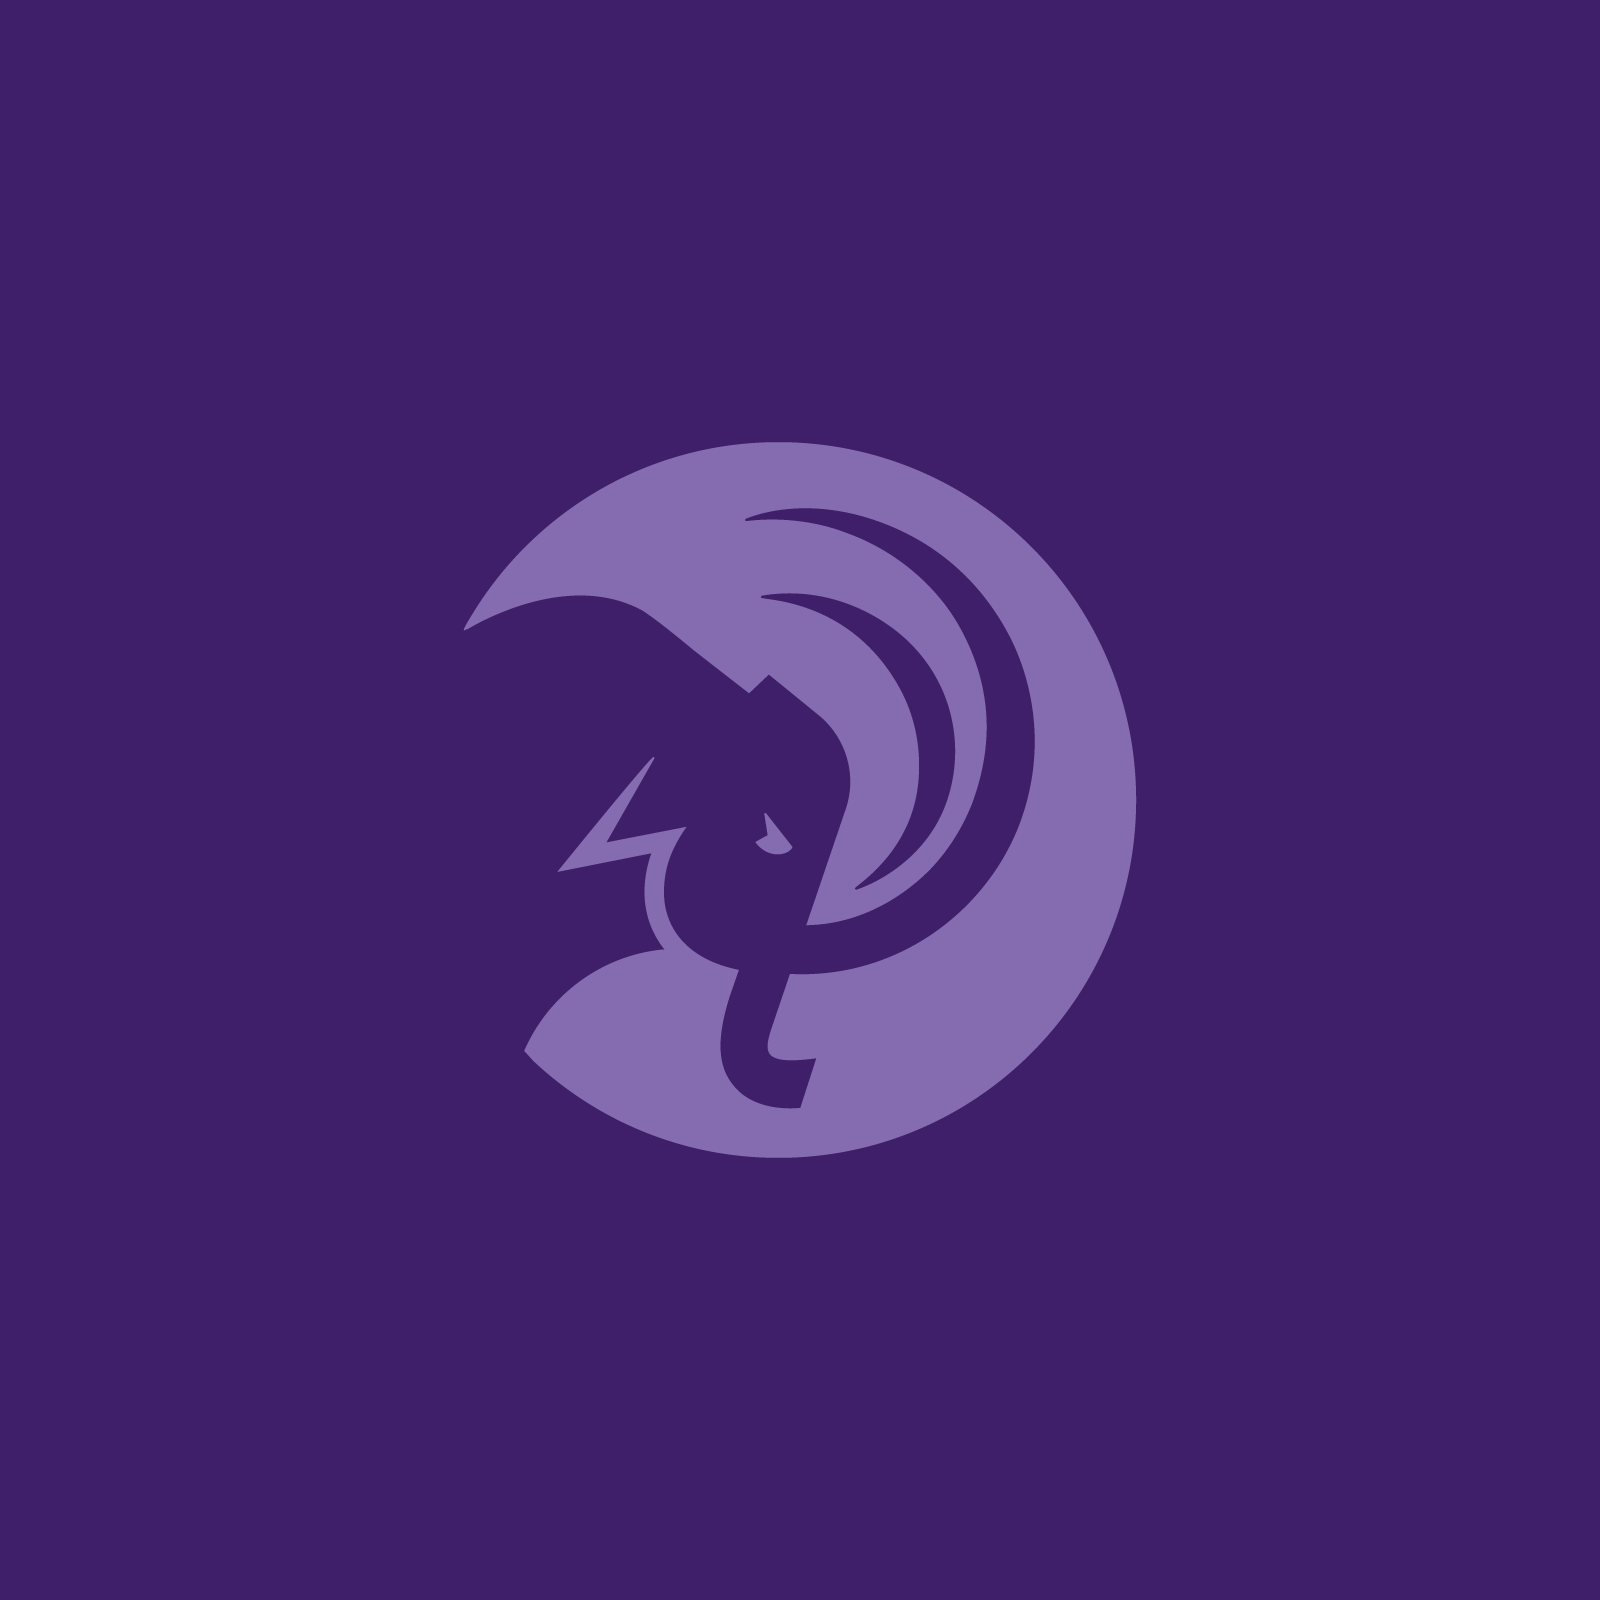 circular mammoth logo in light purple on purple background